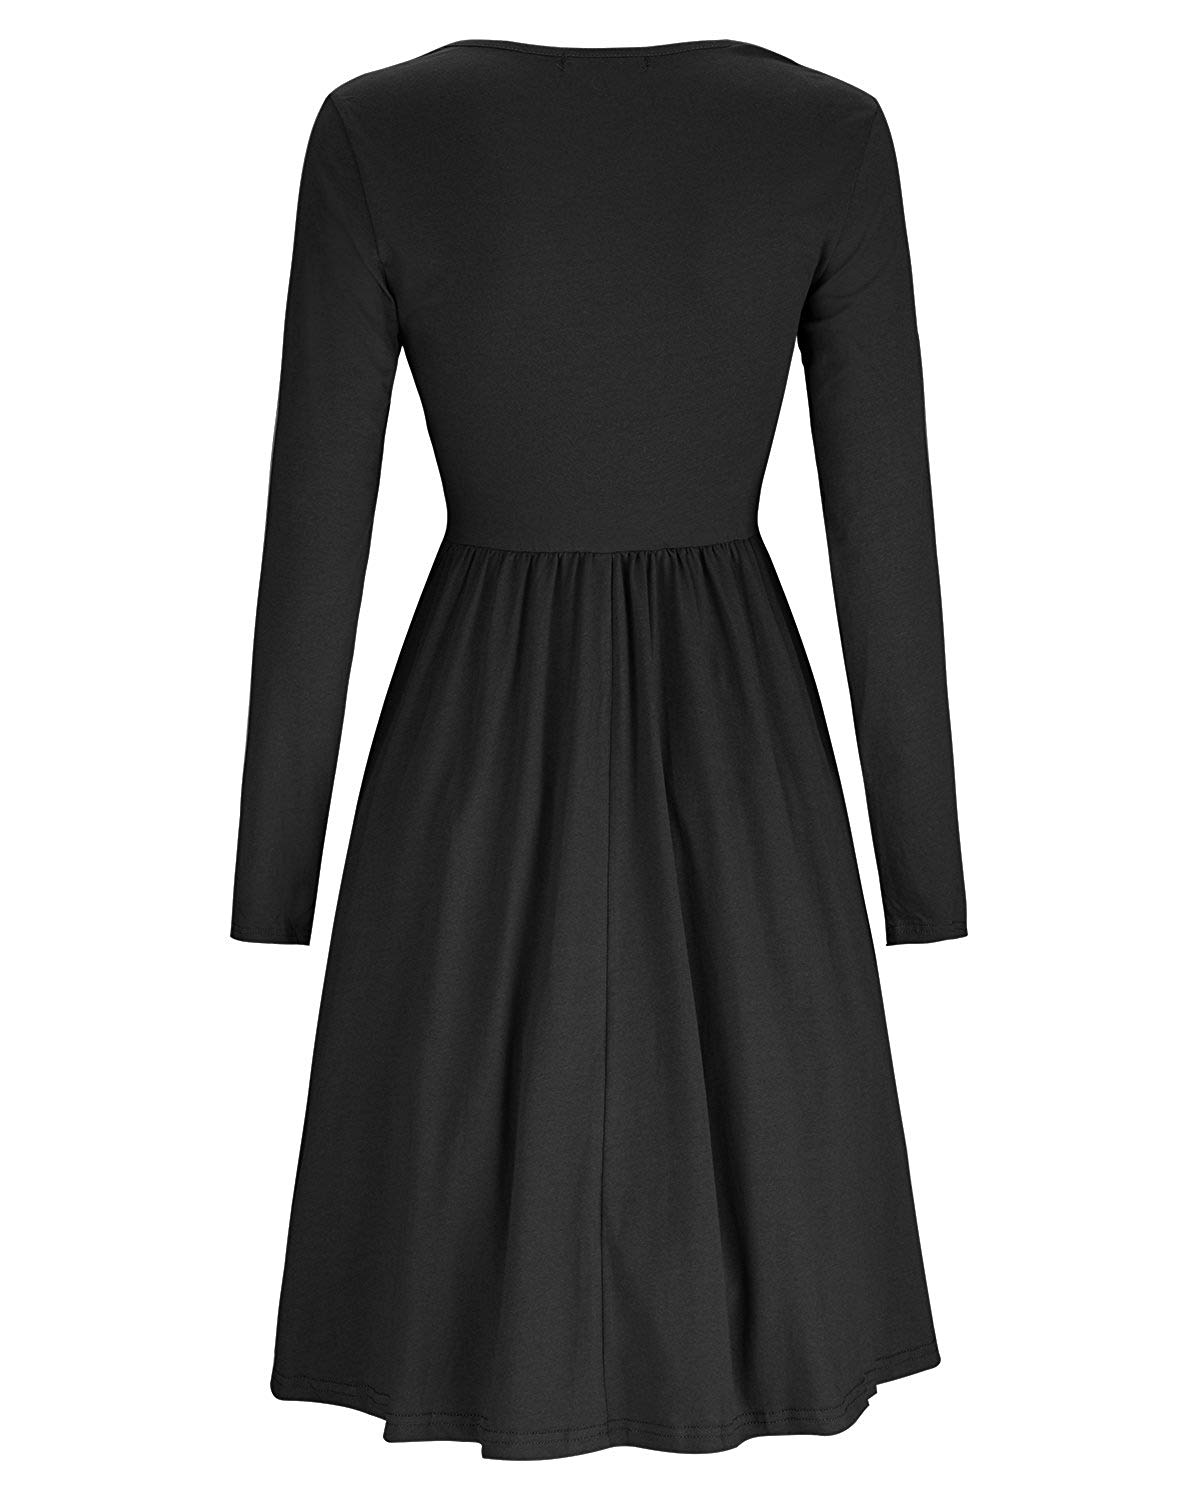 DAILYHAUTE Women's dress Haute Edition Women's Long Sleeve Button Down Dress with Pockets